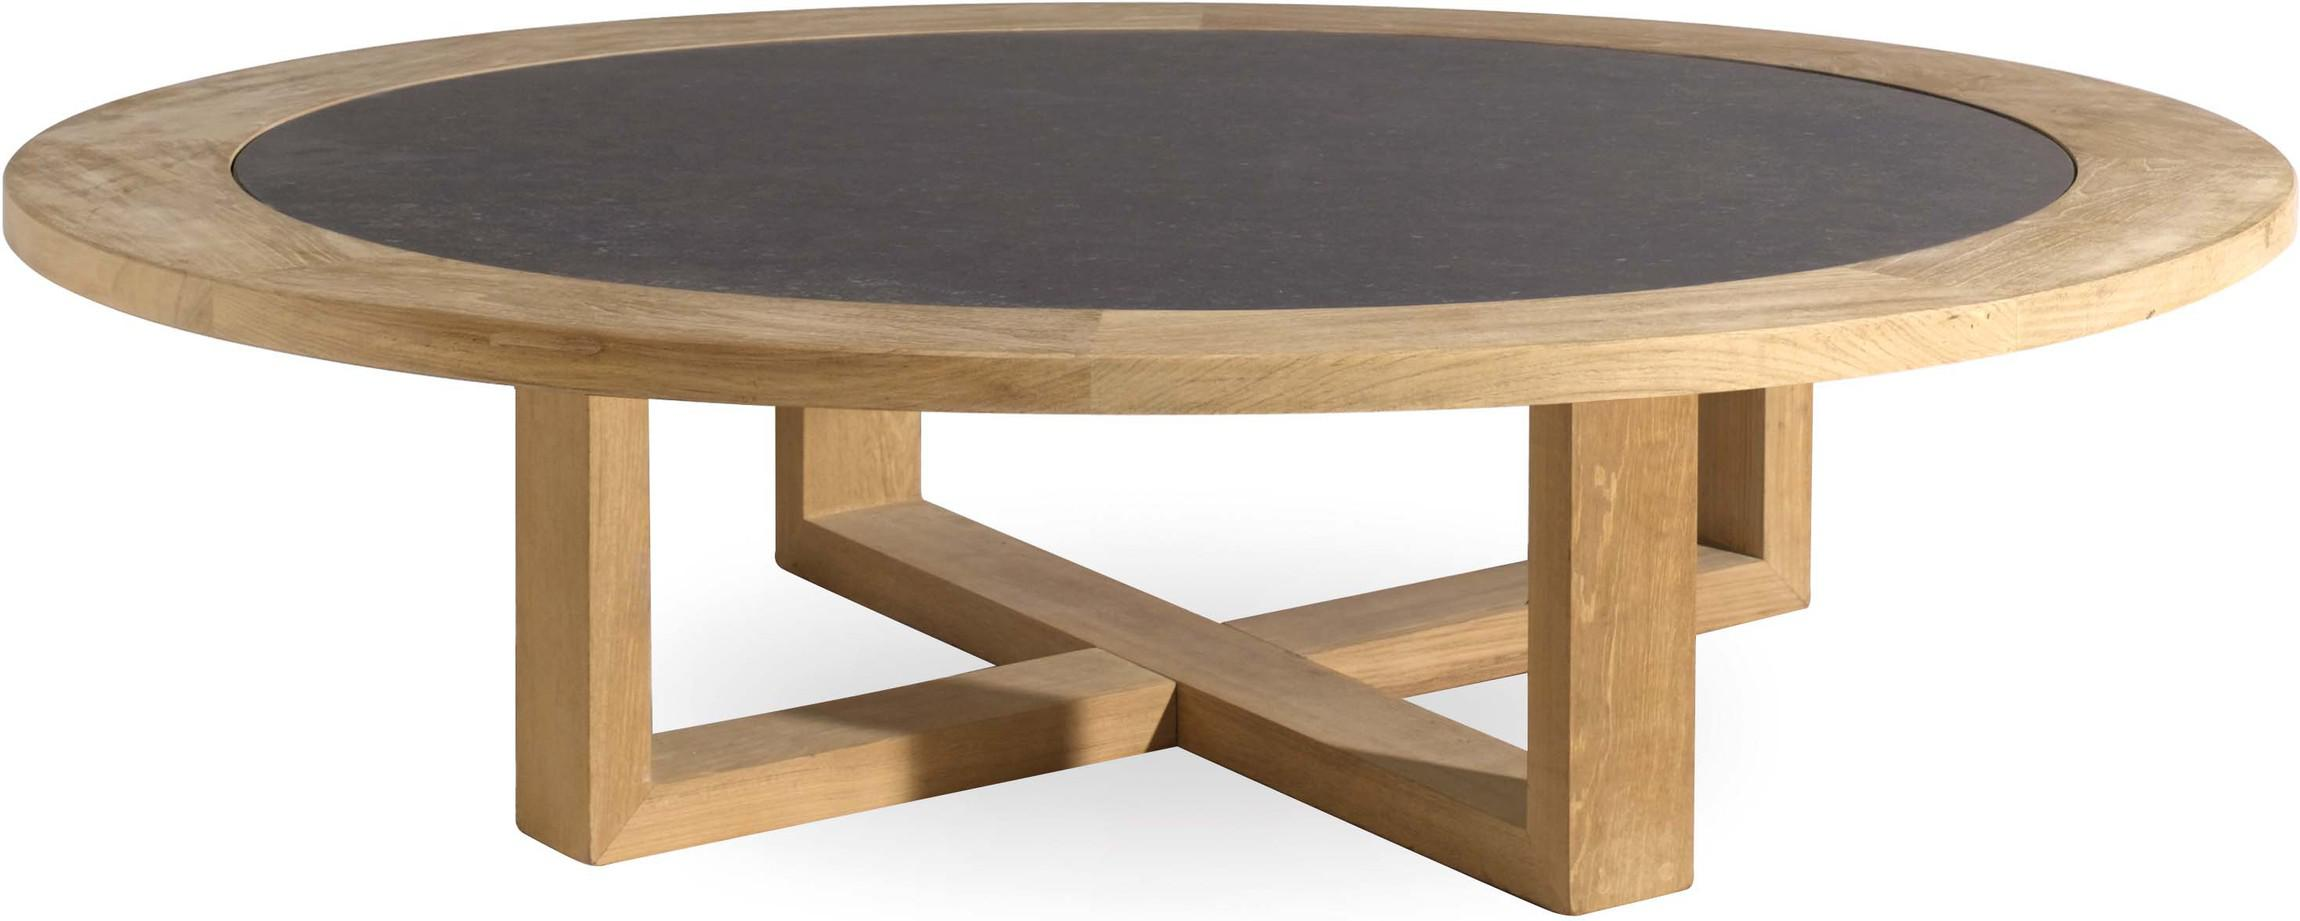 Siena Low table - Teak - 00BD 130